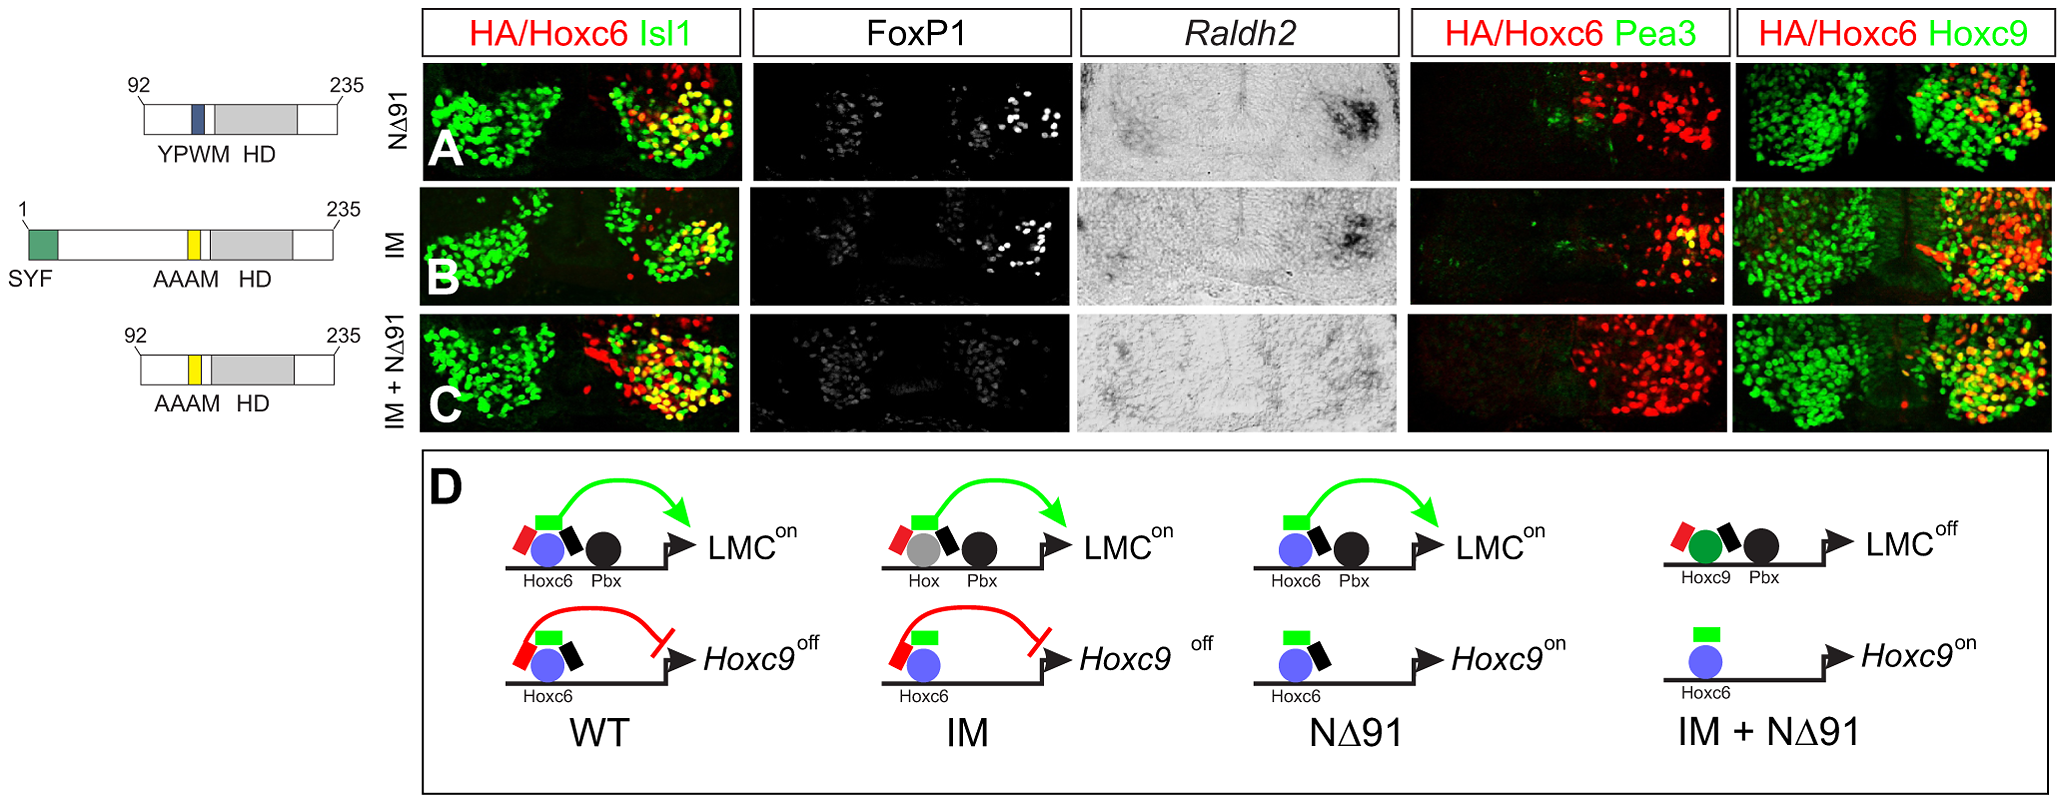 Pbx-dependent and -independent strategies for generating LMC neurons.